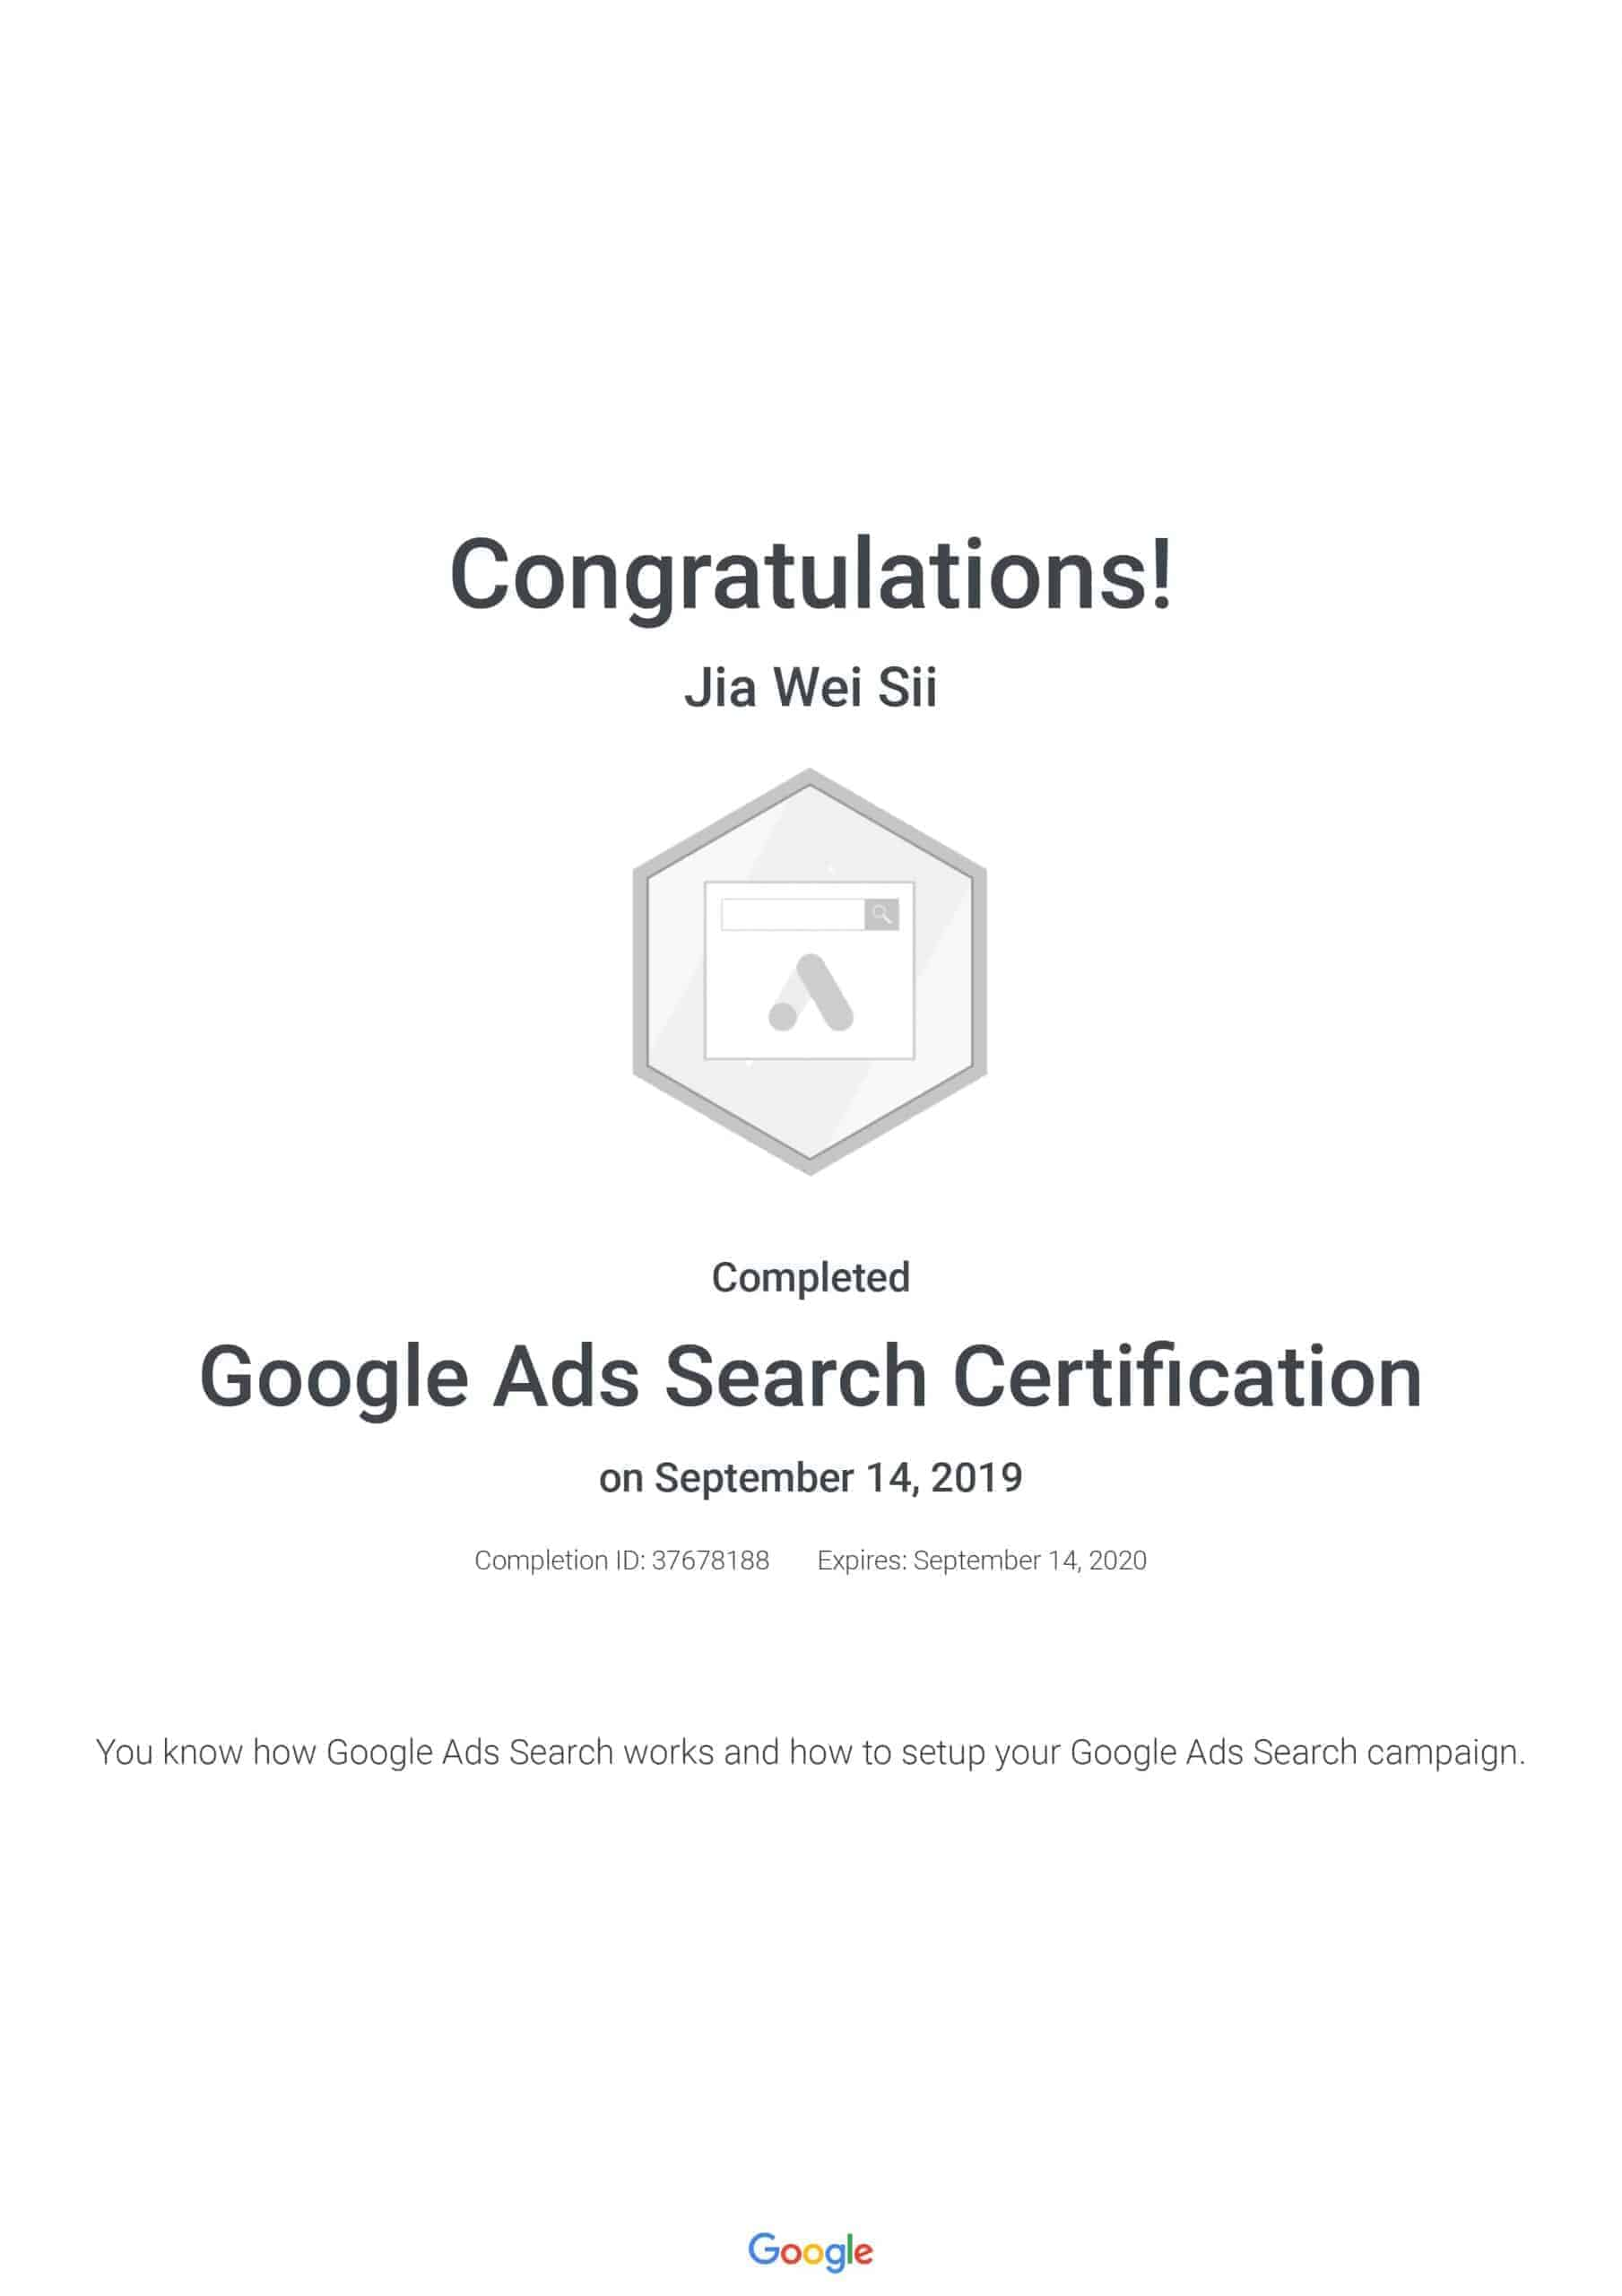 Google Ads Search Certification - Jia Wei